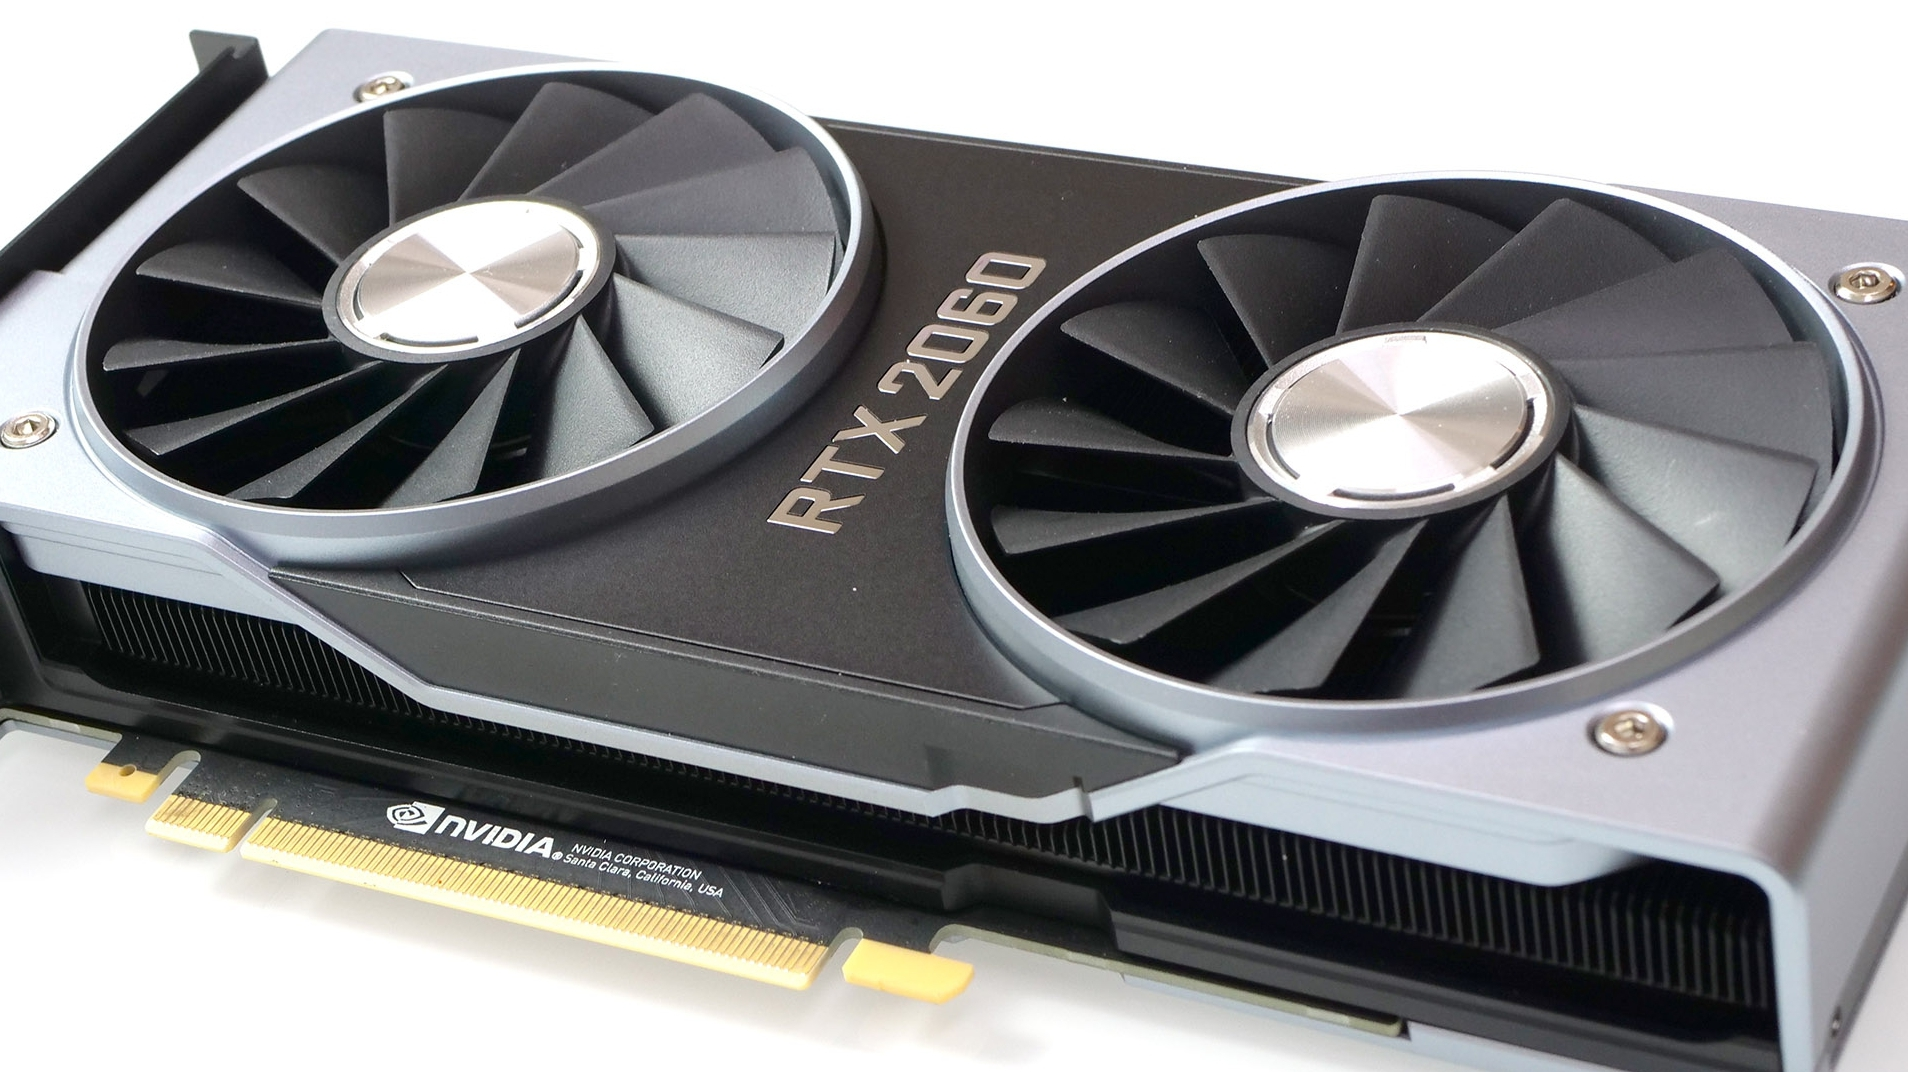 Nvidia GeForce RTX 2060: rasterisation performance analysis